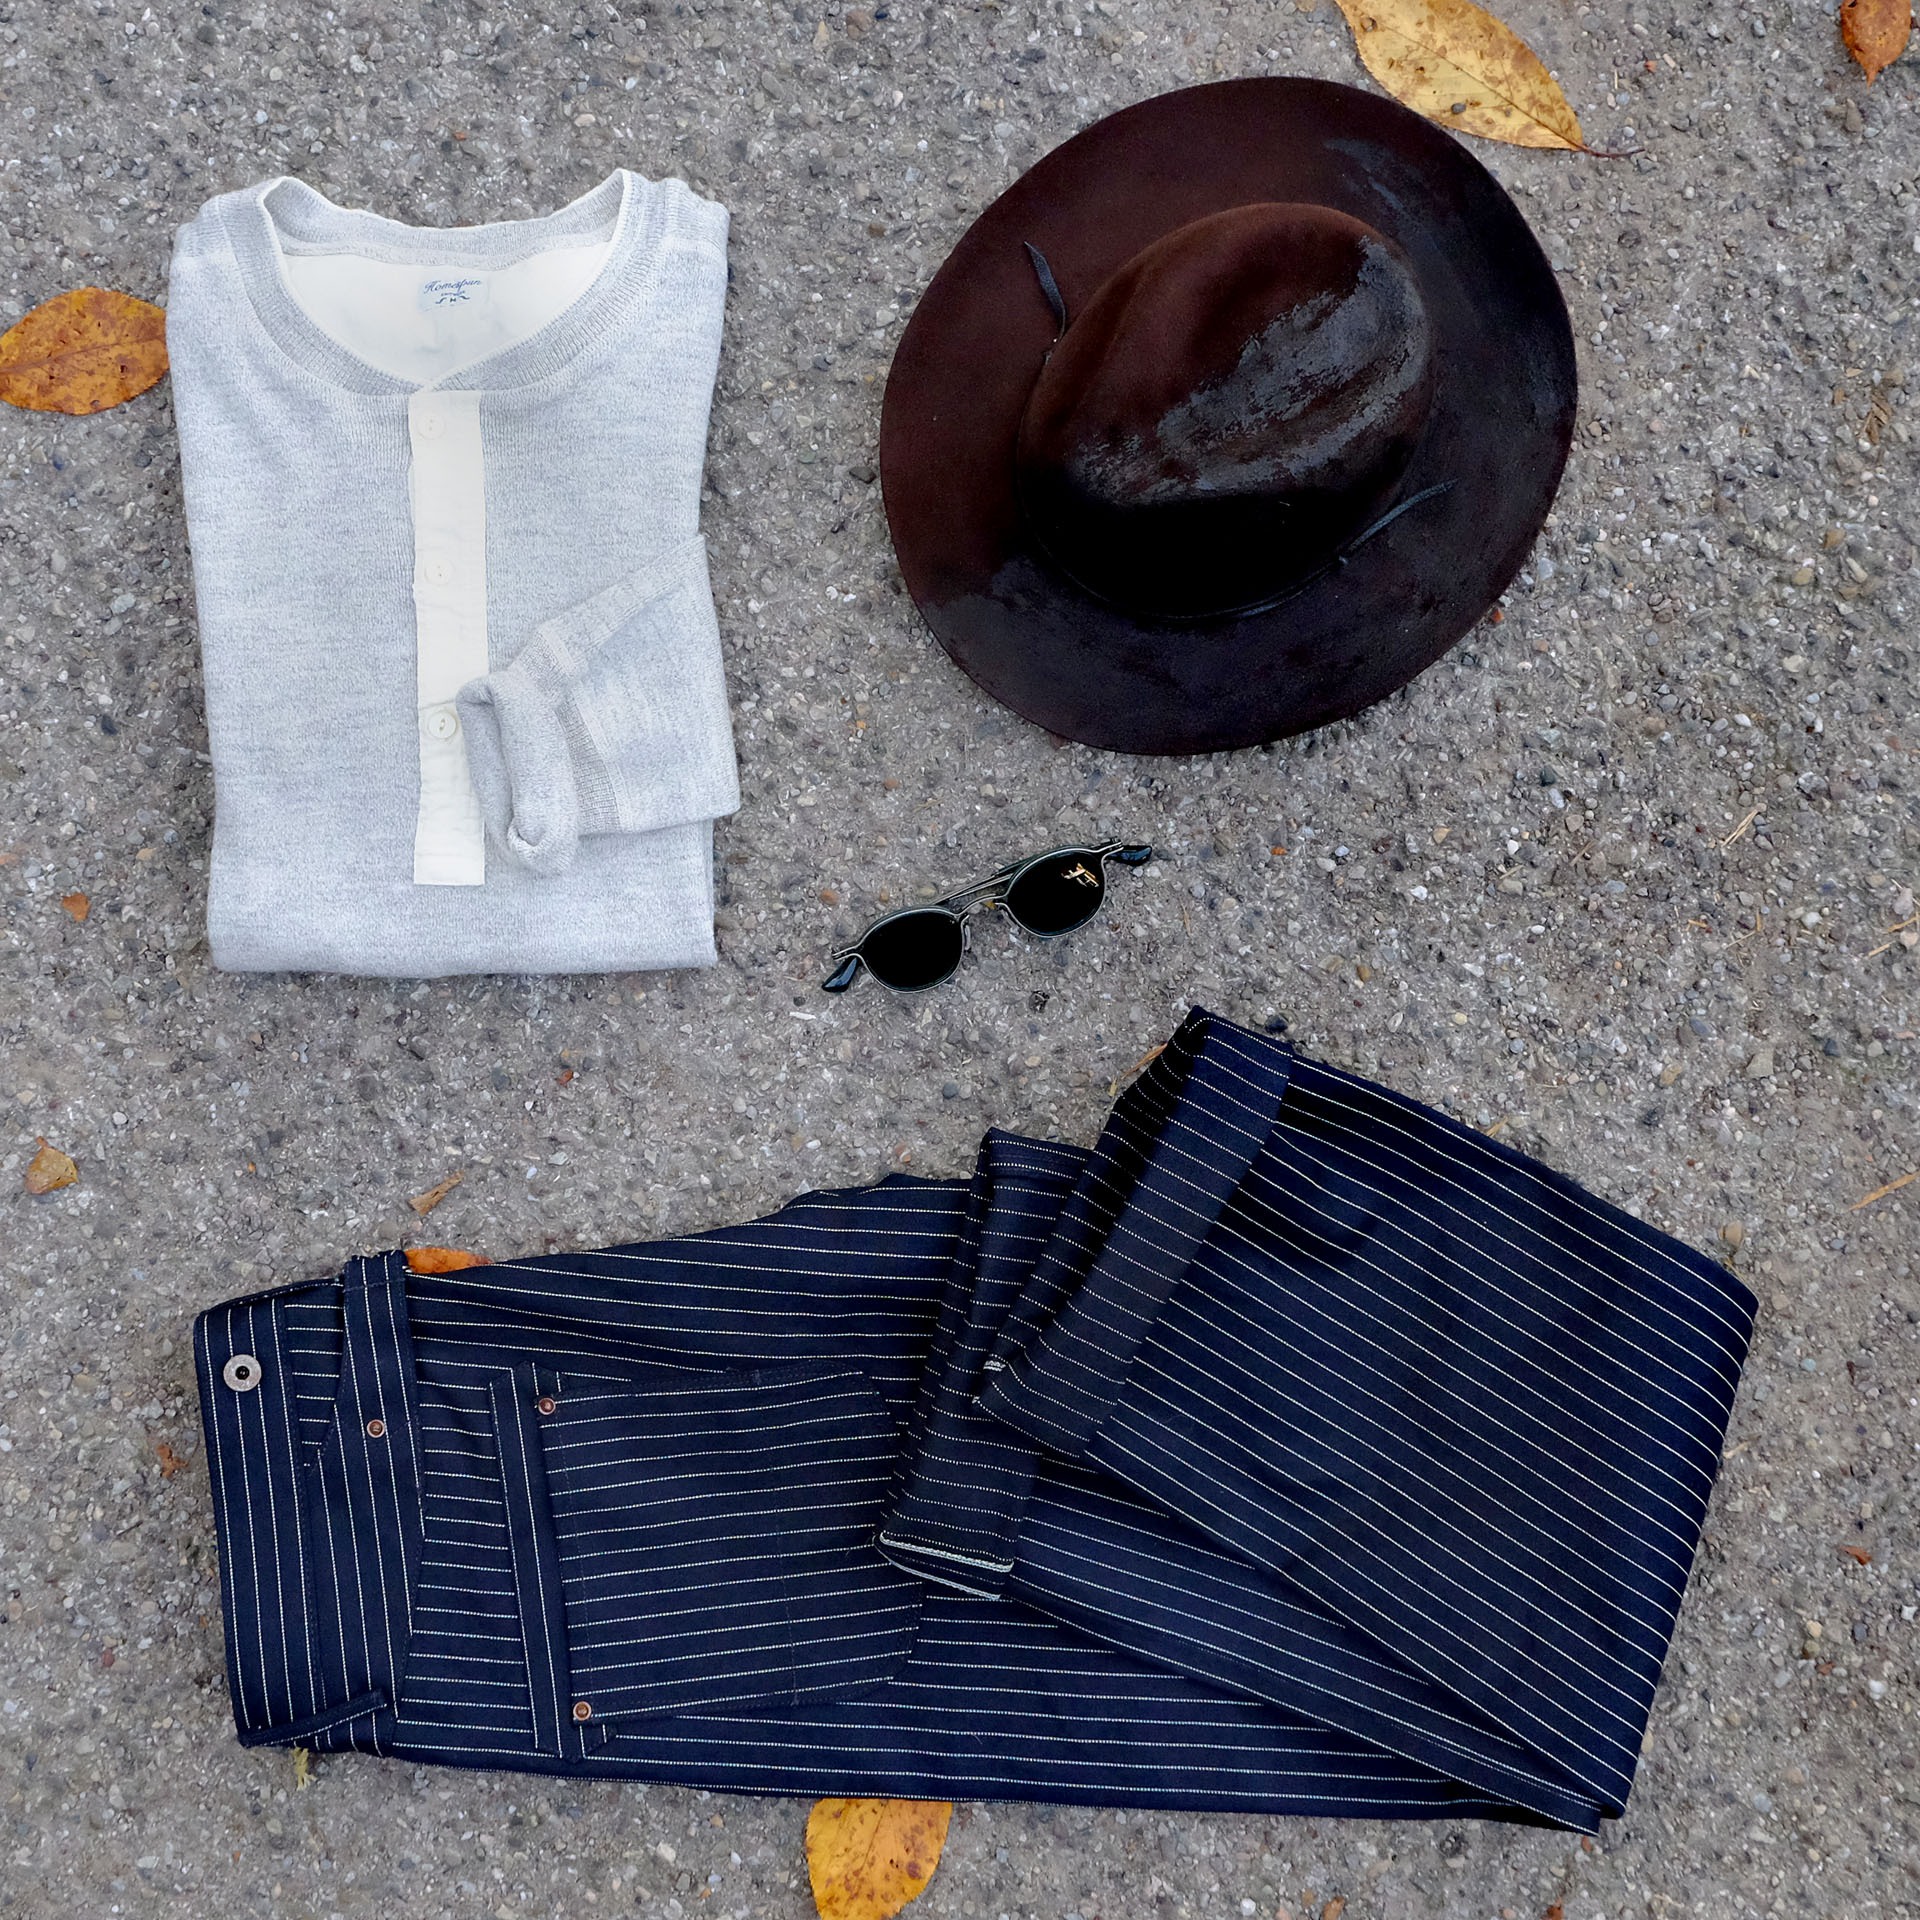 outfit-moveroma-hut-risingsun-blacksmith-jeans-homespun-melange-henley